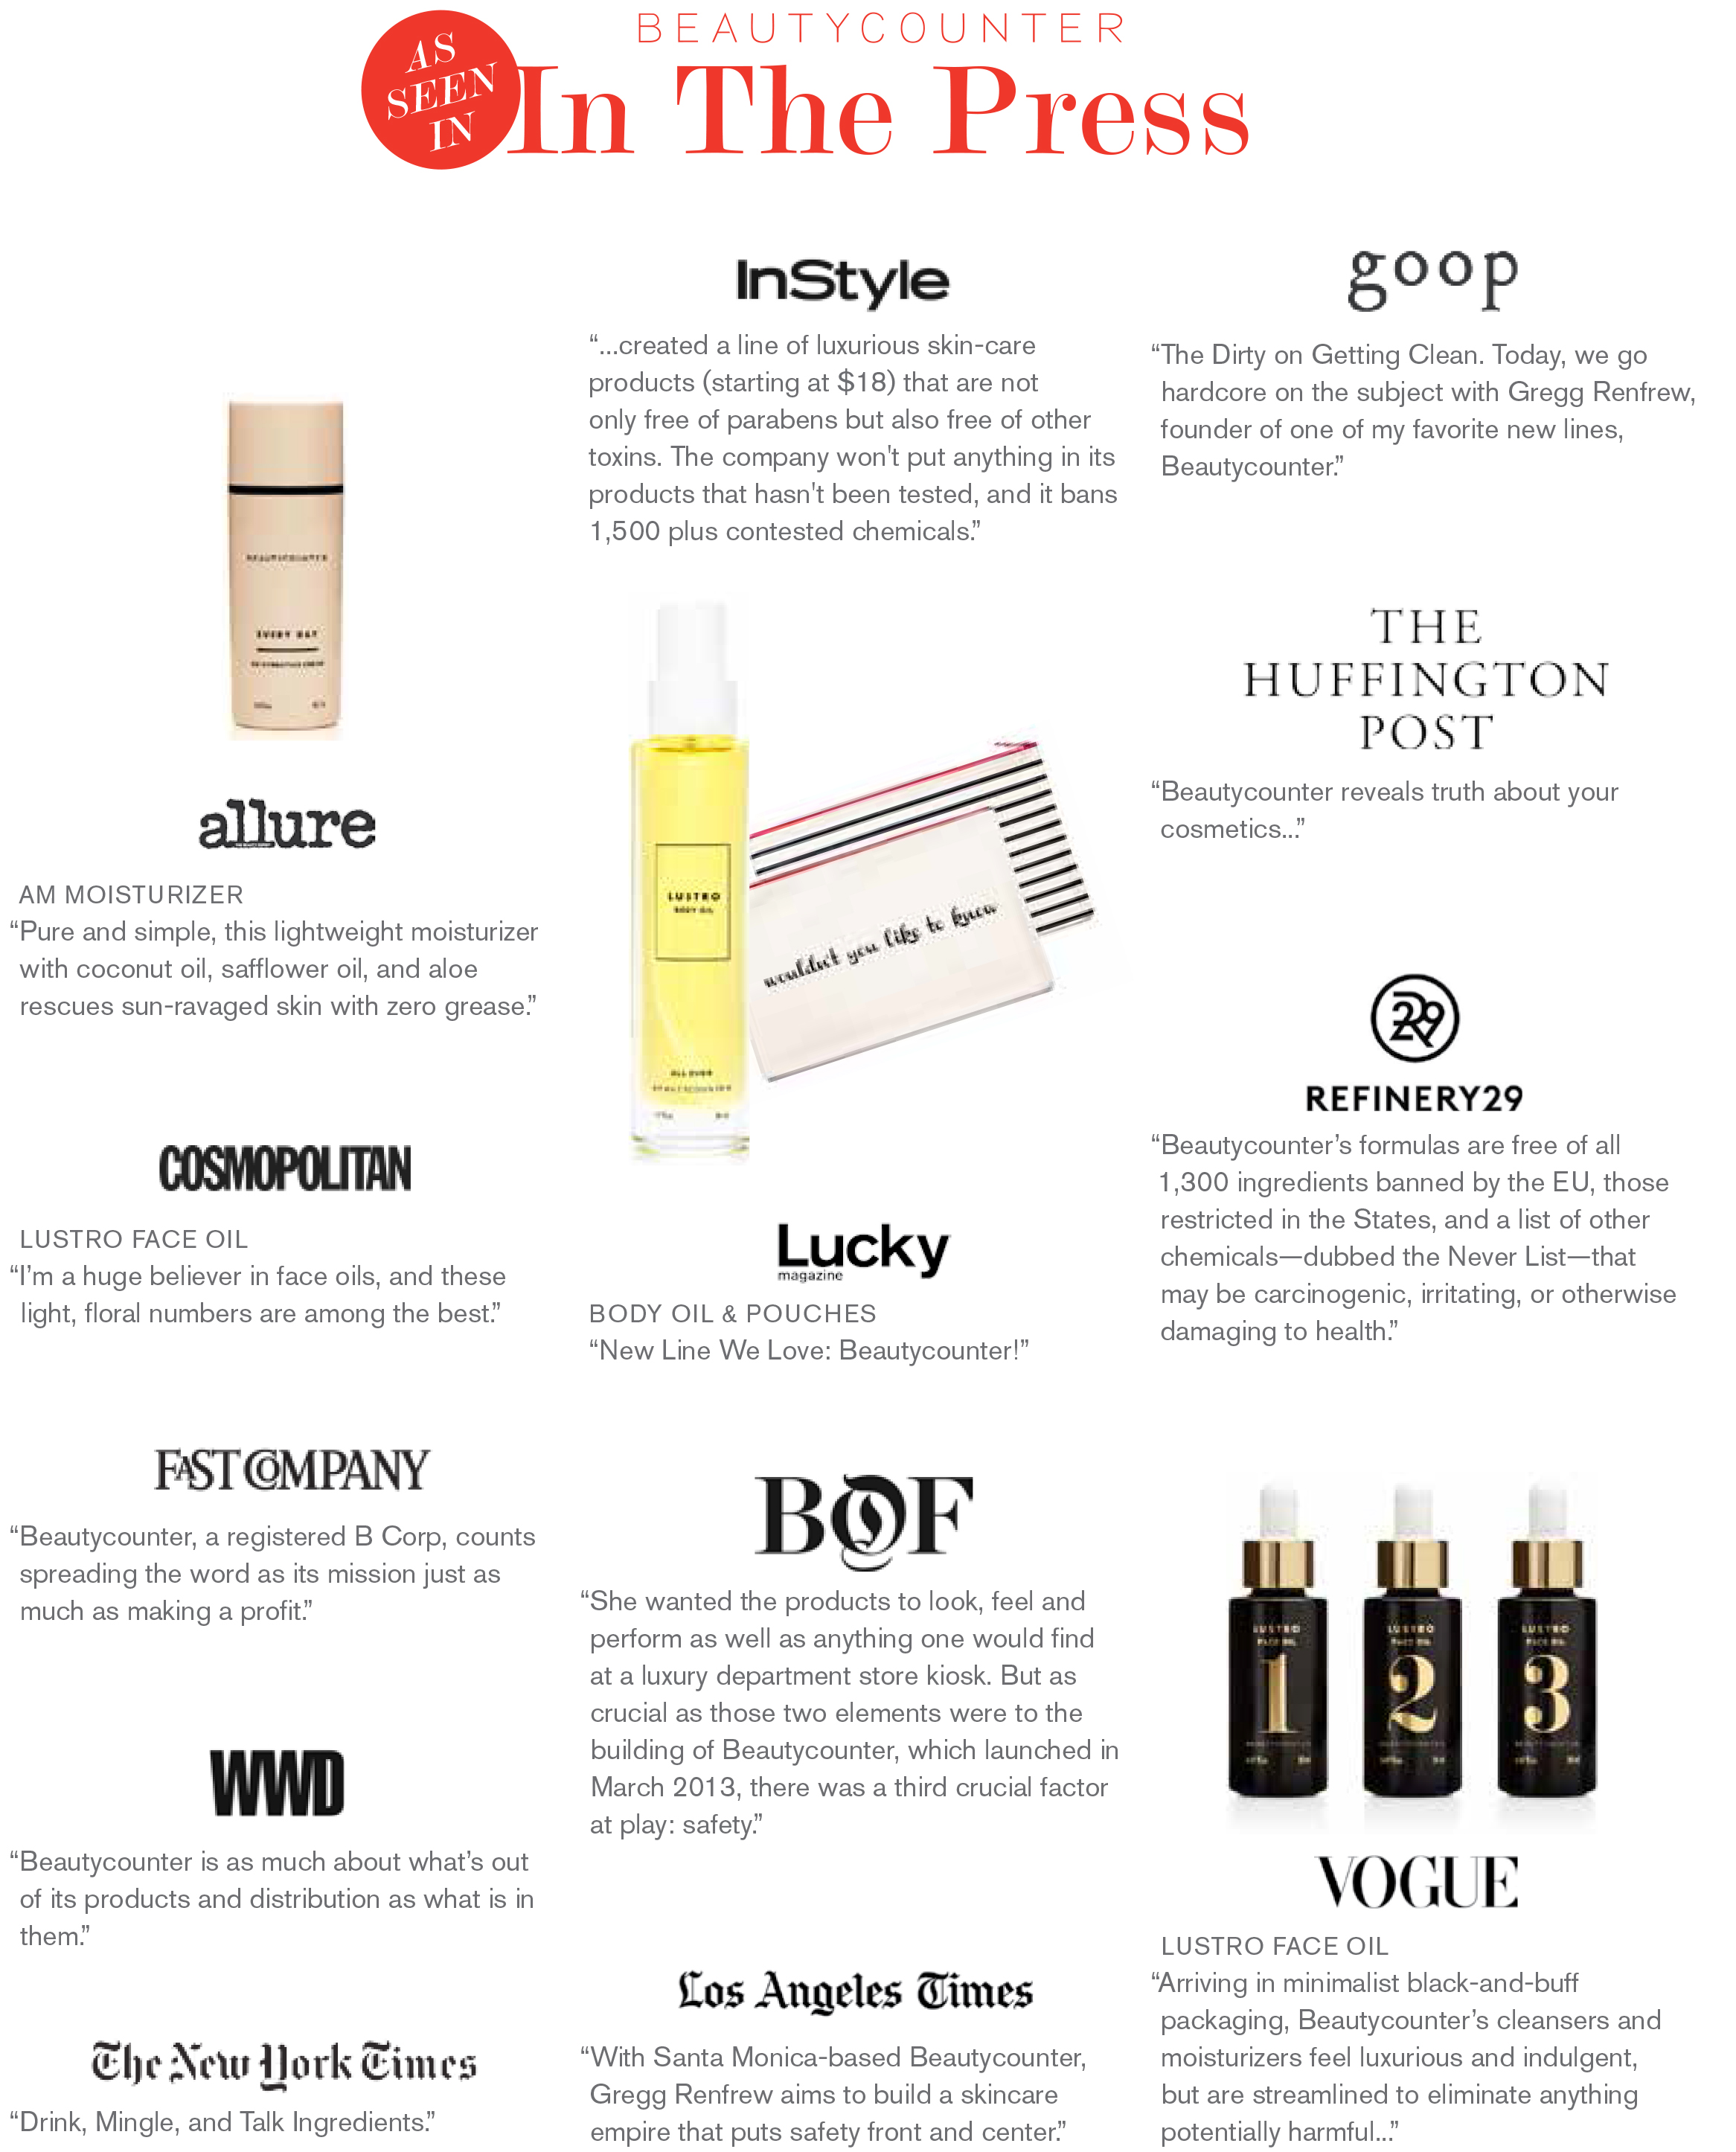 *Image supplied by Beautycounter.